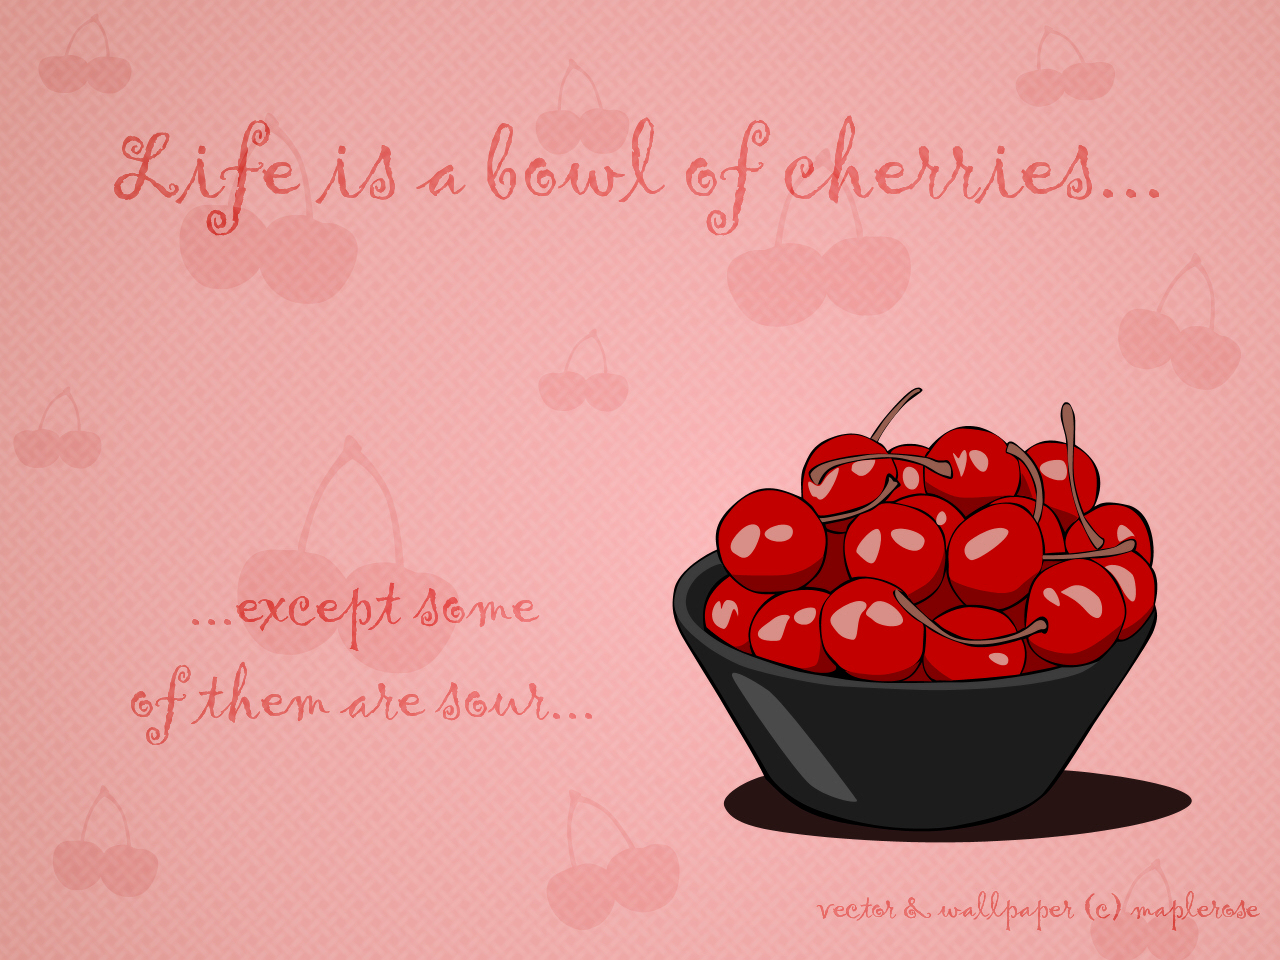 Relationship Quotes Wallpapers Original Wallpaper Life Is A Bowl Of Cherries Minitokyo